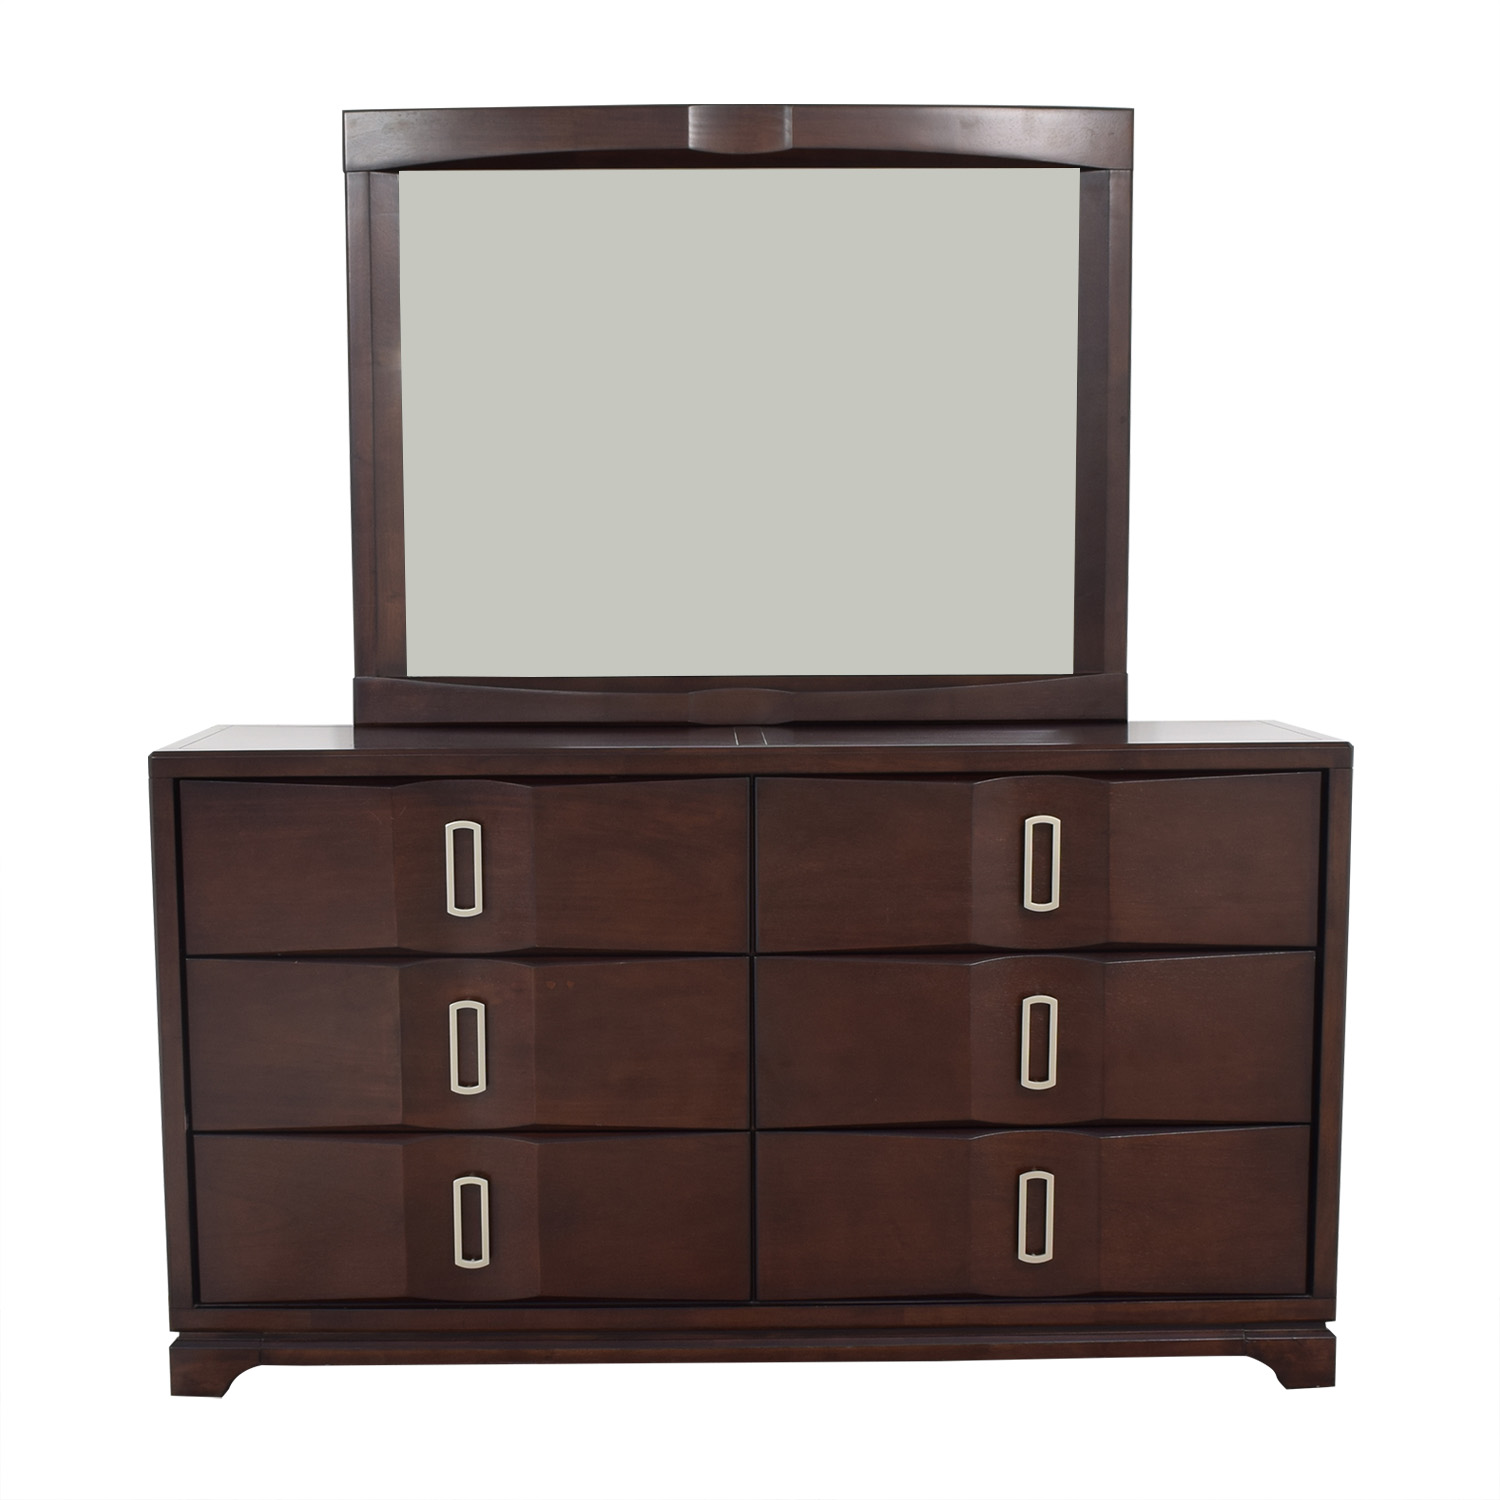 Casana Furniture Casana Furniture Dresser with Mirror used